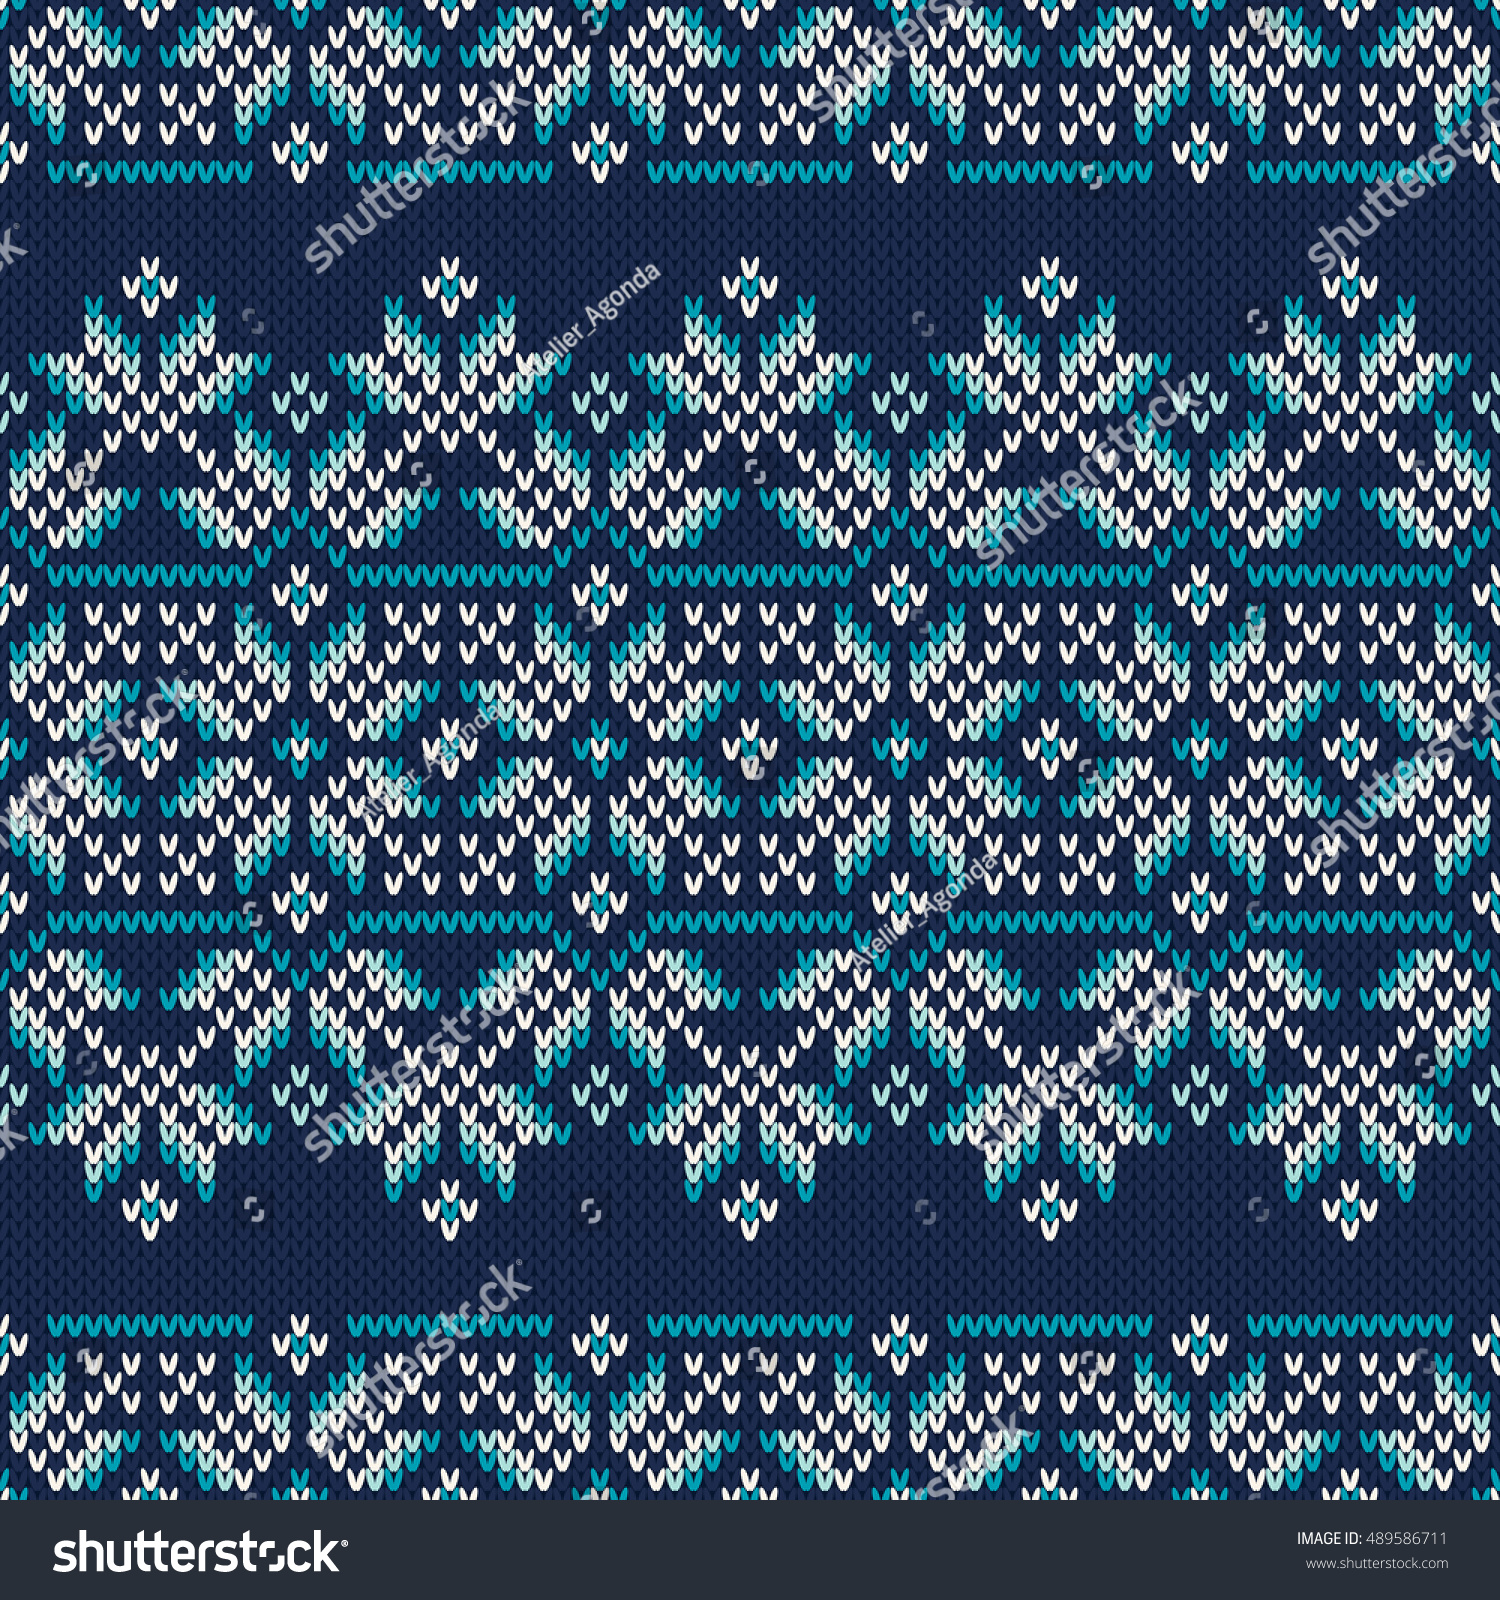 Winter Holiday Fair Isle Knitted Pattern Stock Vector HD (Royalty ...